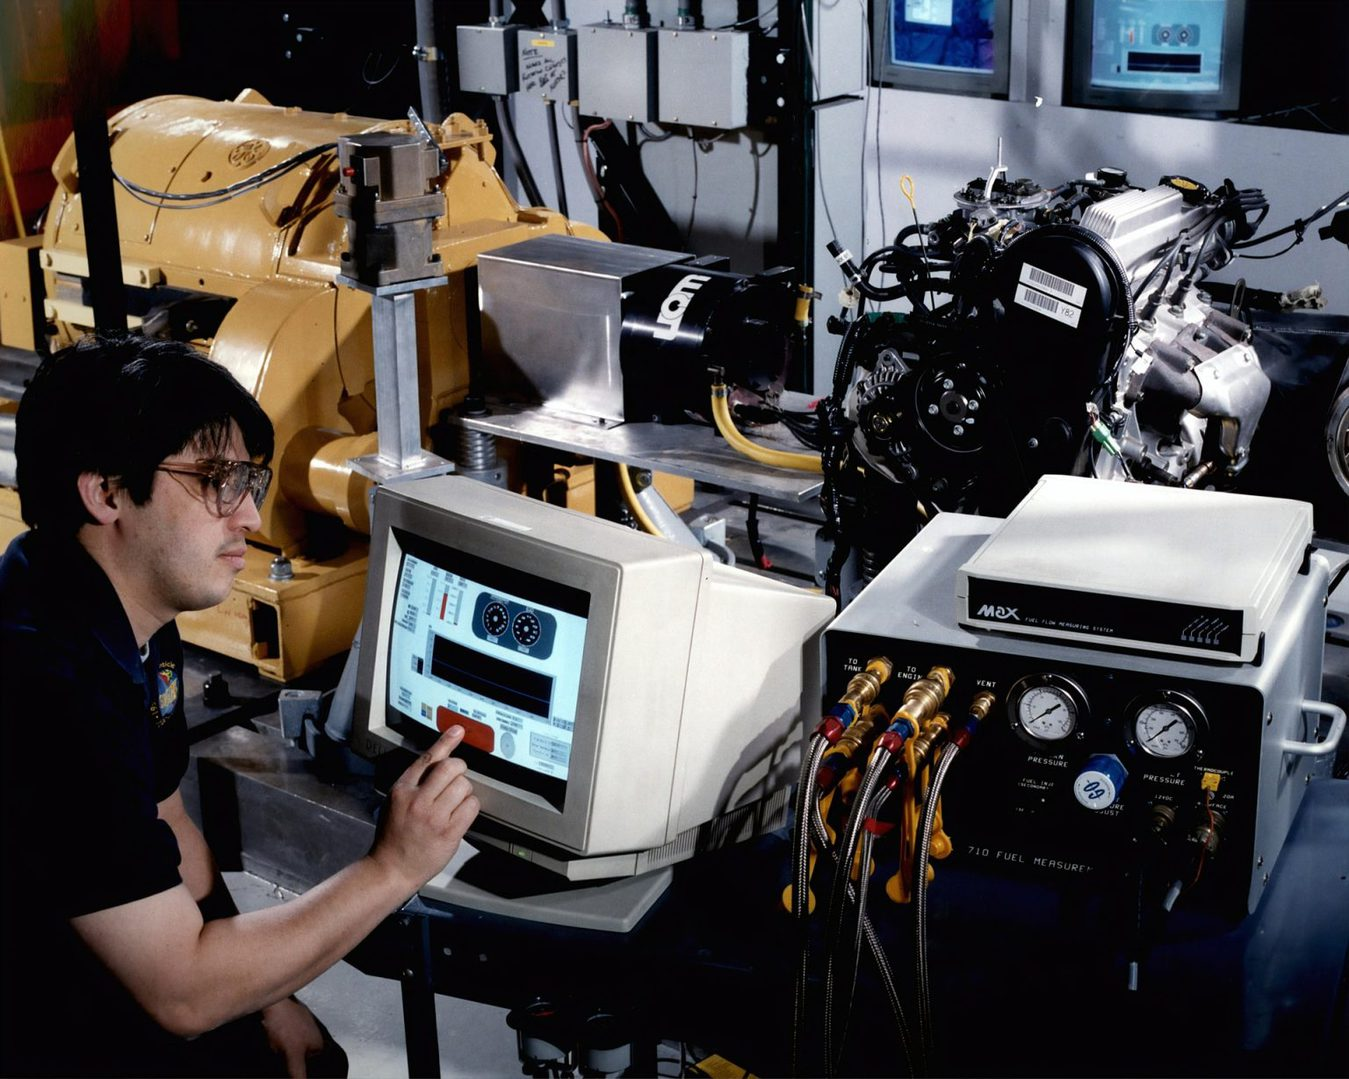 Computer guy with lots of computers and cables